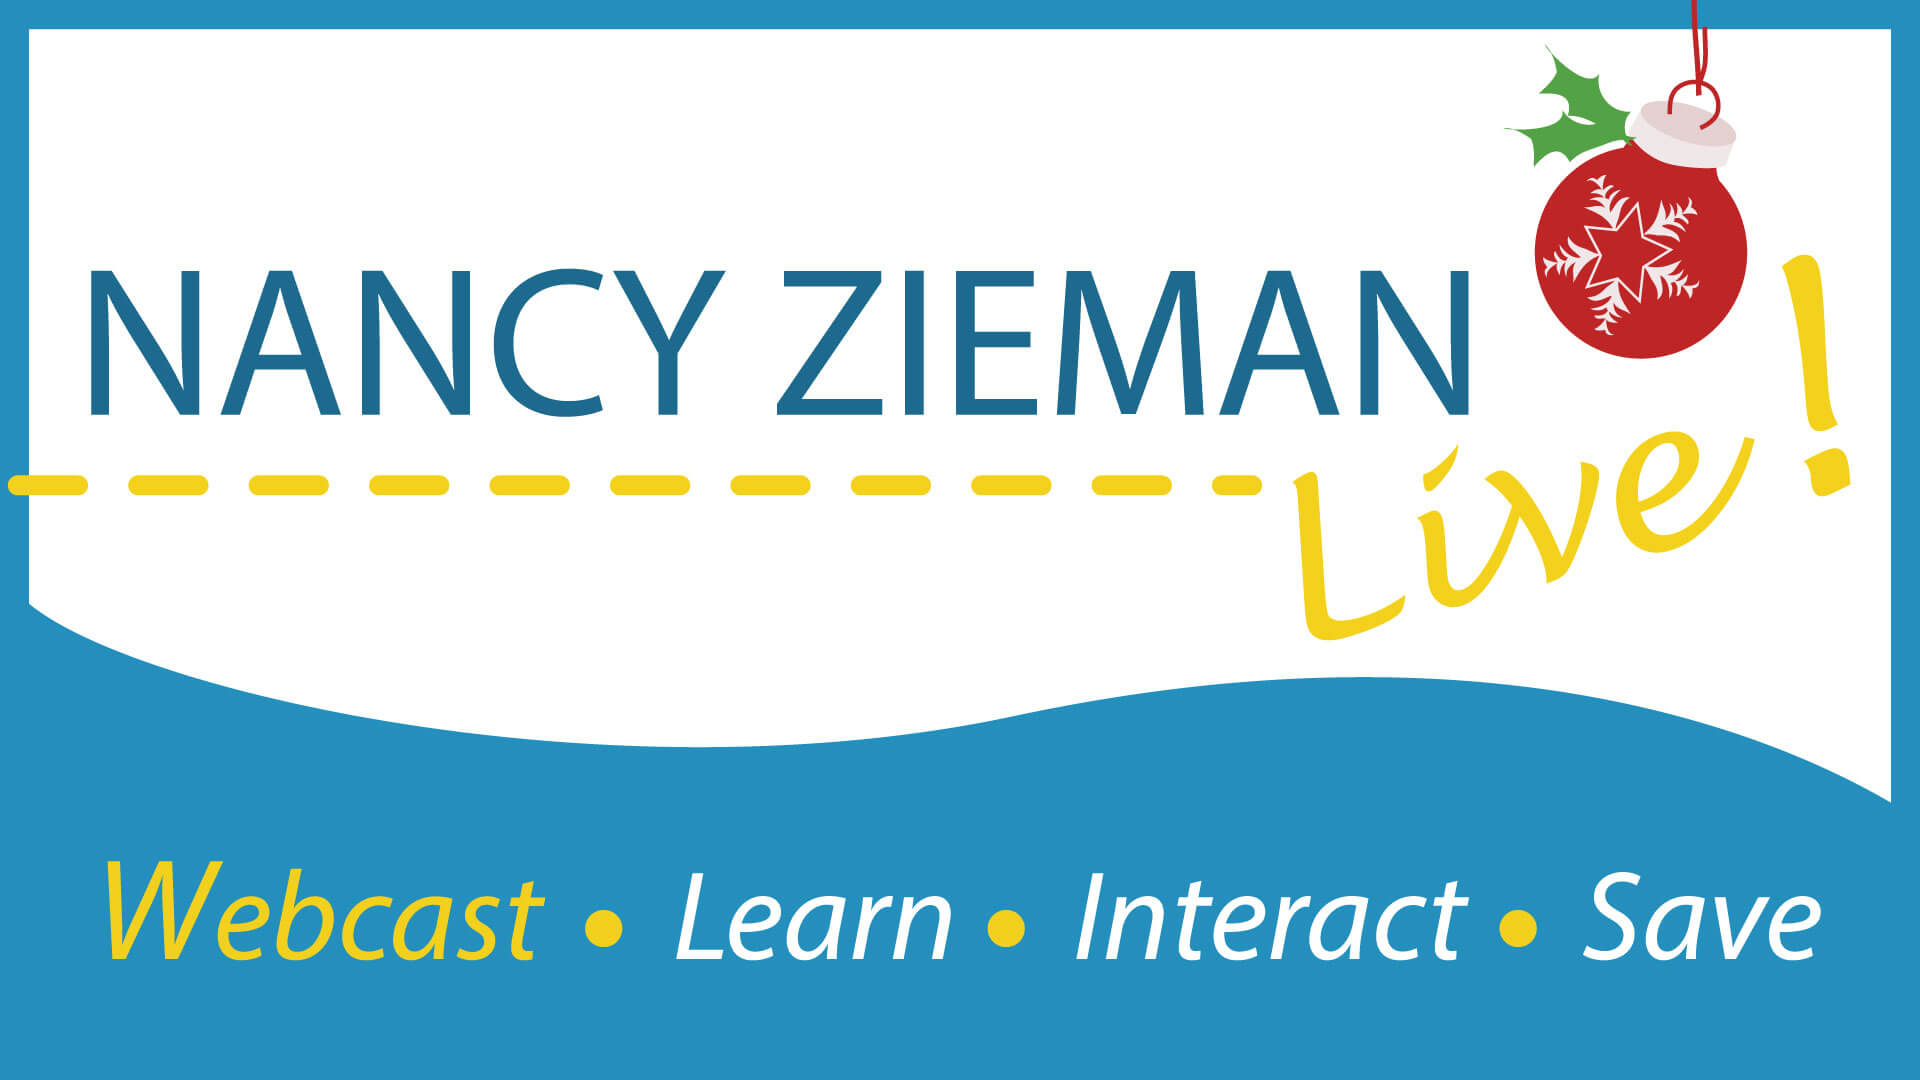 Nancy Zieman Live Webcast on November 22, 2014 featuring Easy Gifts to Sew in Two Evenings or Less.